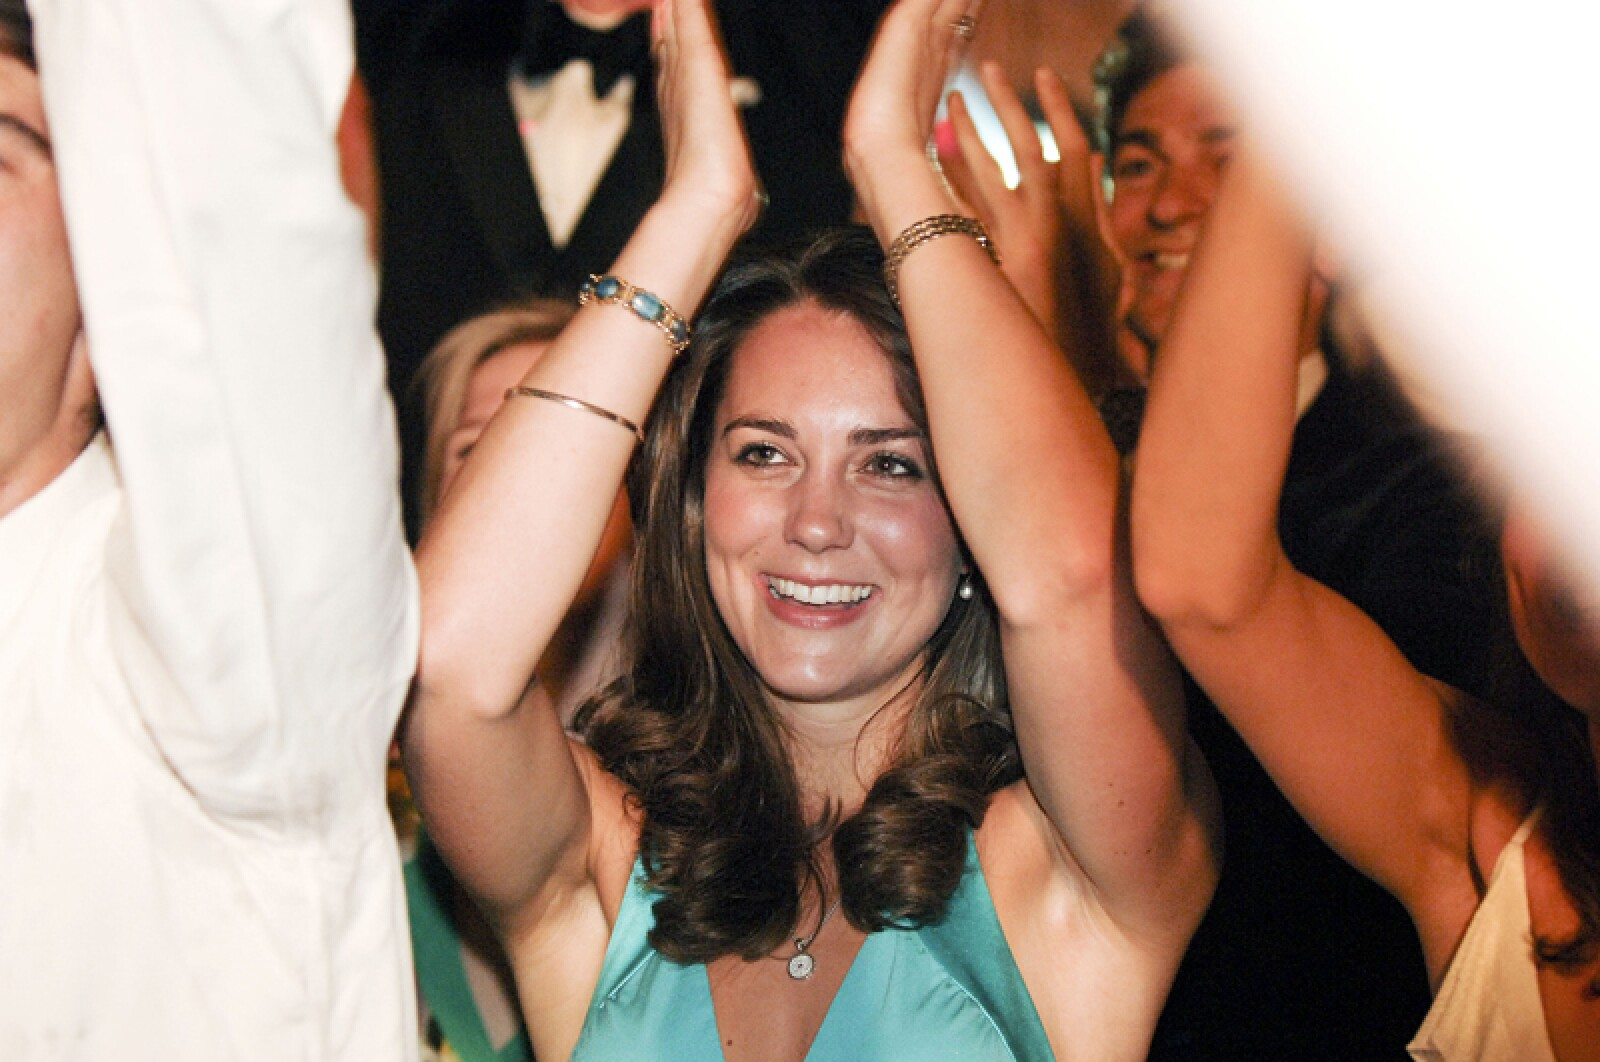 2006 Boodles Boxing Ball in Aid of Sparks Sports, Aiding Medical Research For Kids at the Royal Lancaster Hotel - 03 Jun 2006